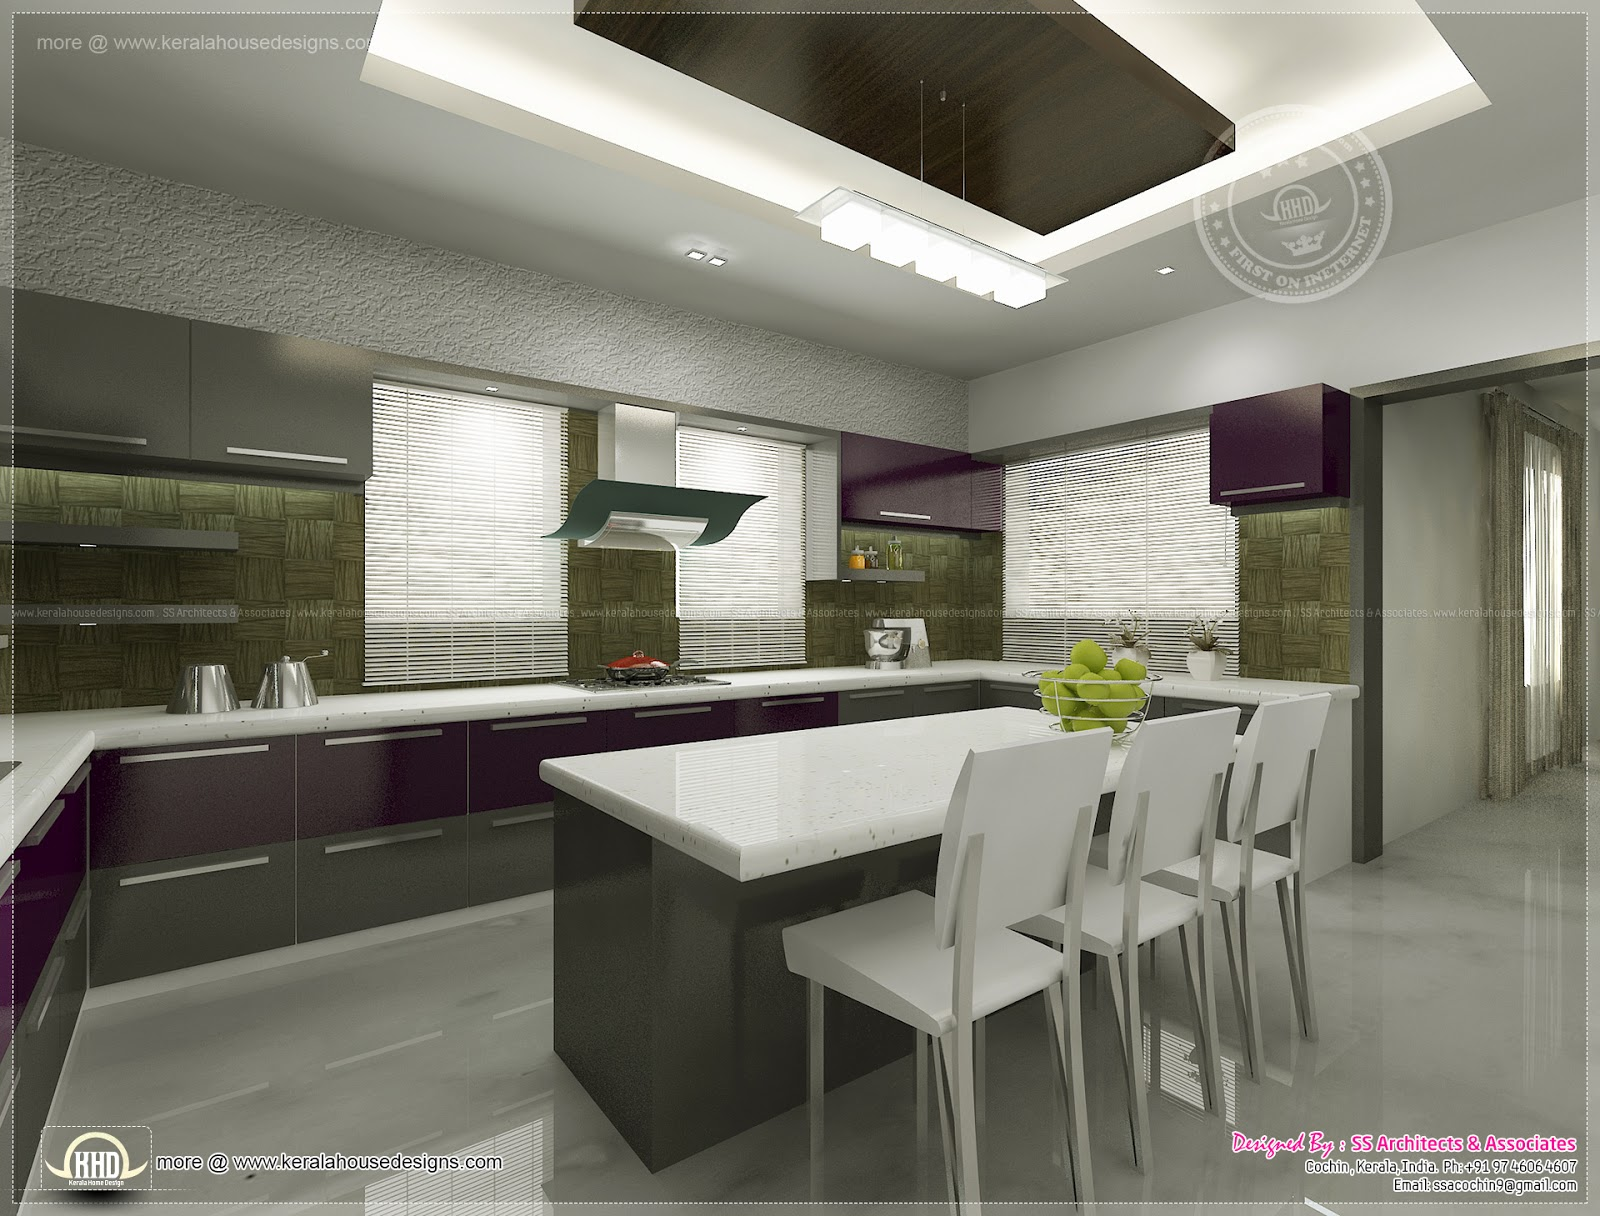 kitchen interiors designs kitchen interior views by ss architects cochin kerala home design and floor plans 2787